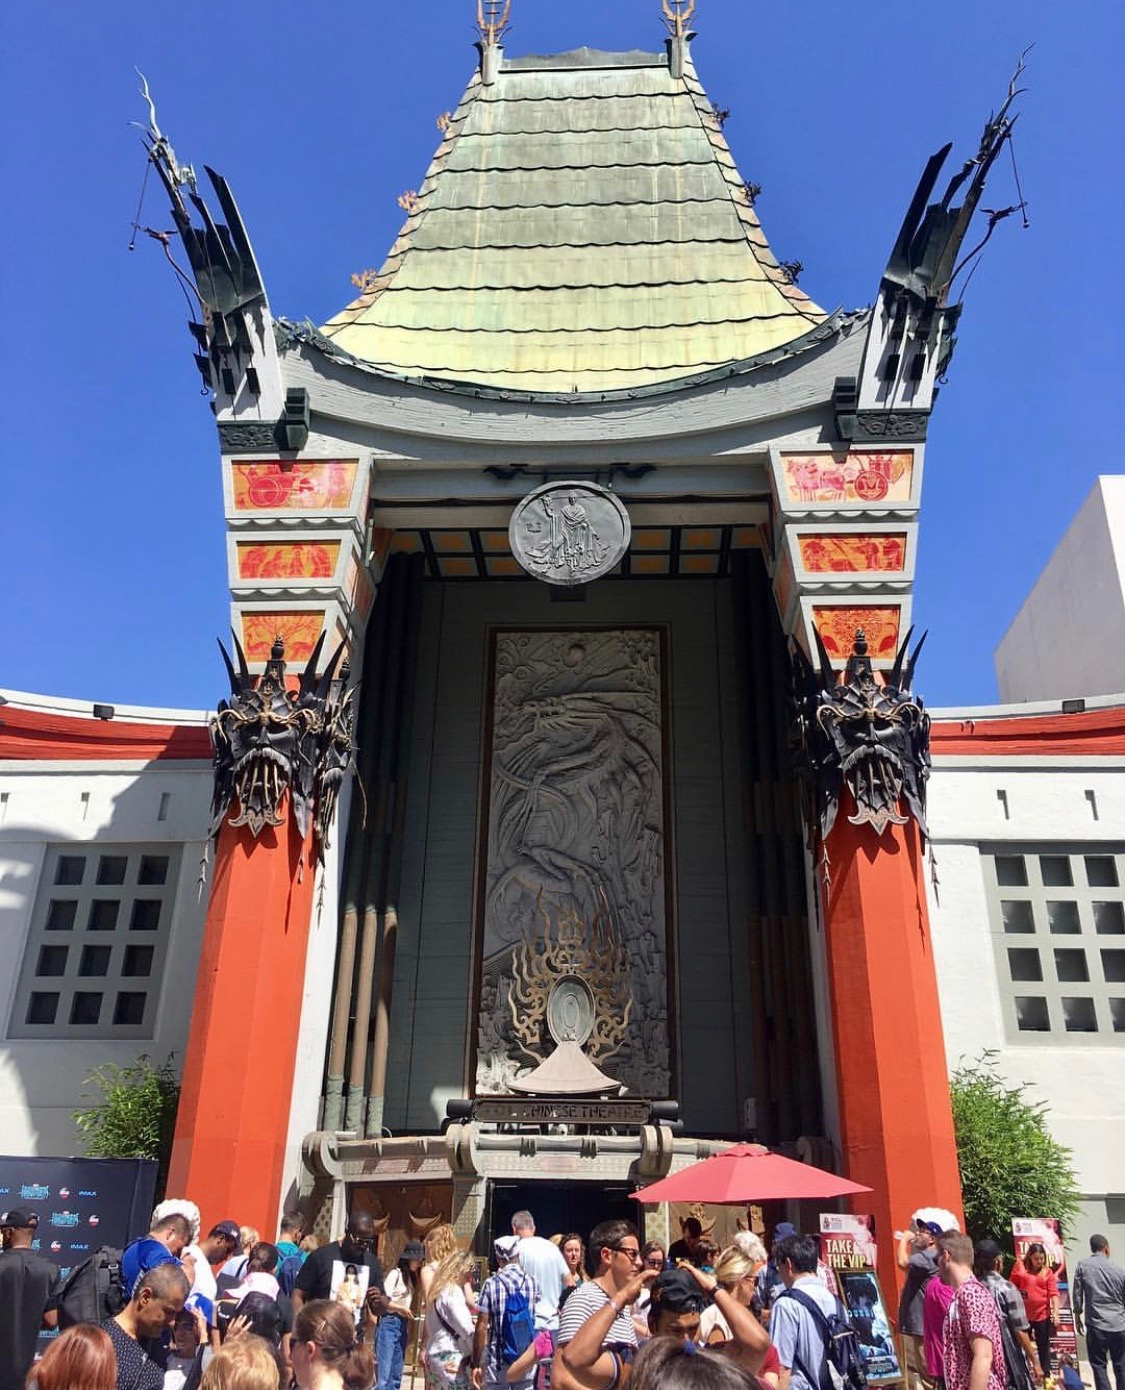 The Chinese Theatre is spectacular!